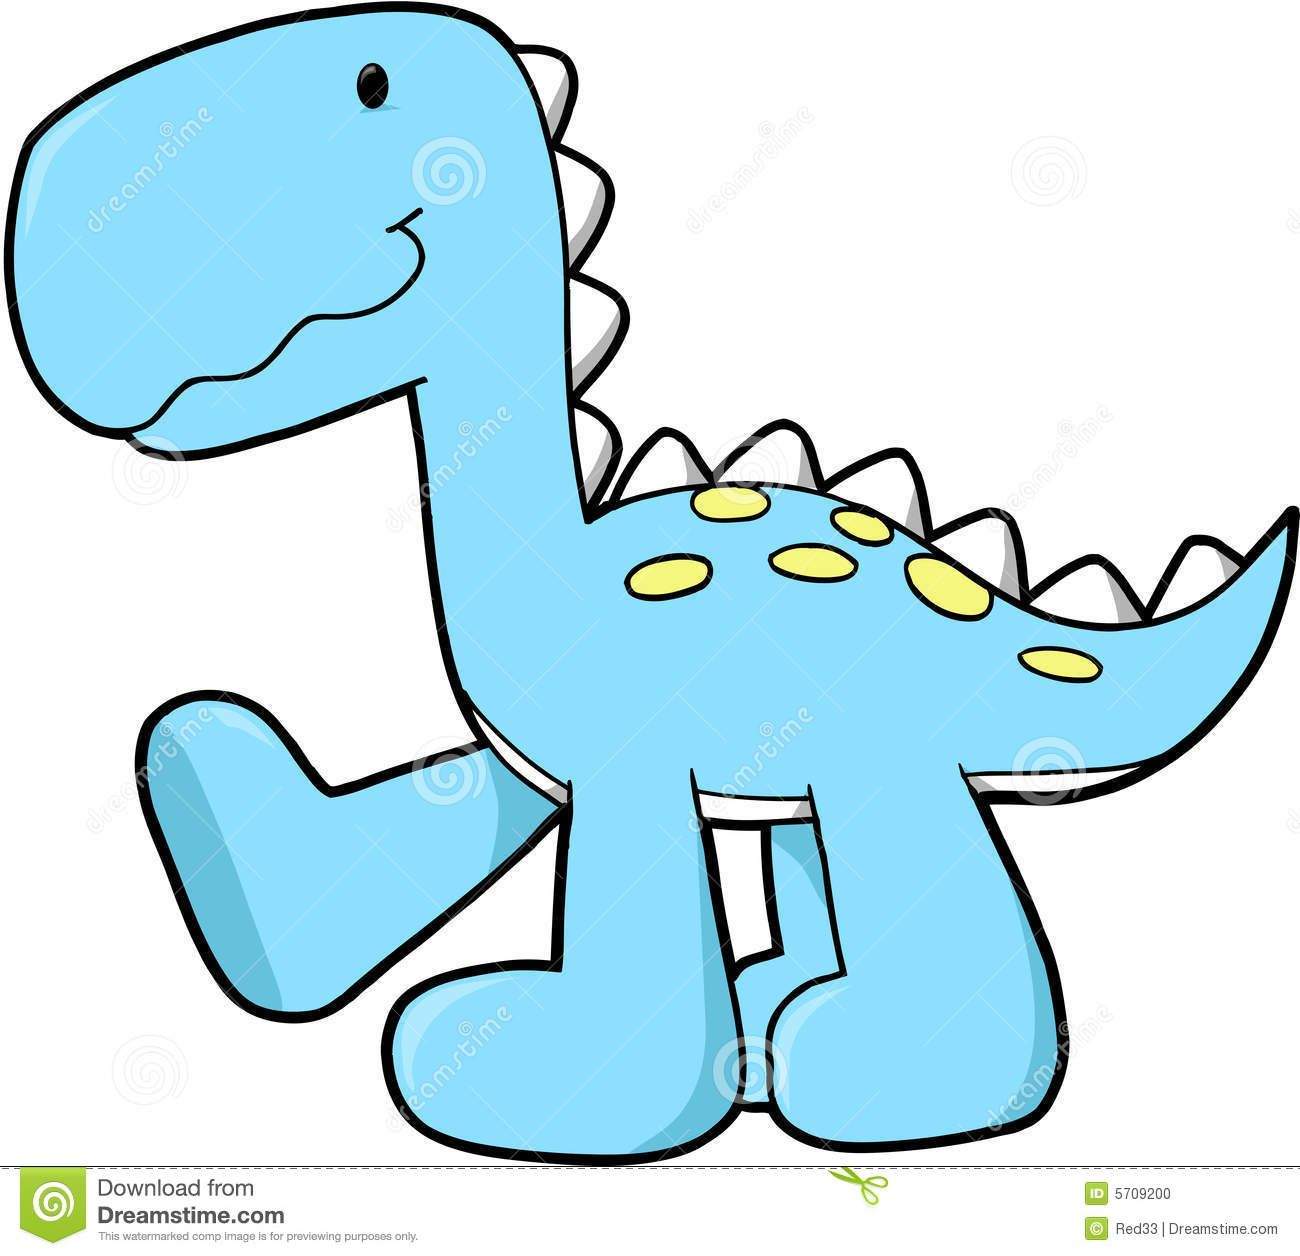 cute dinosaur free clipart toddler homeschool projects pinterest rh pinterest com  cute dinosaur clipart black and white